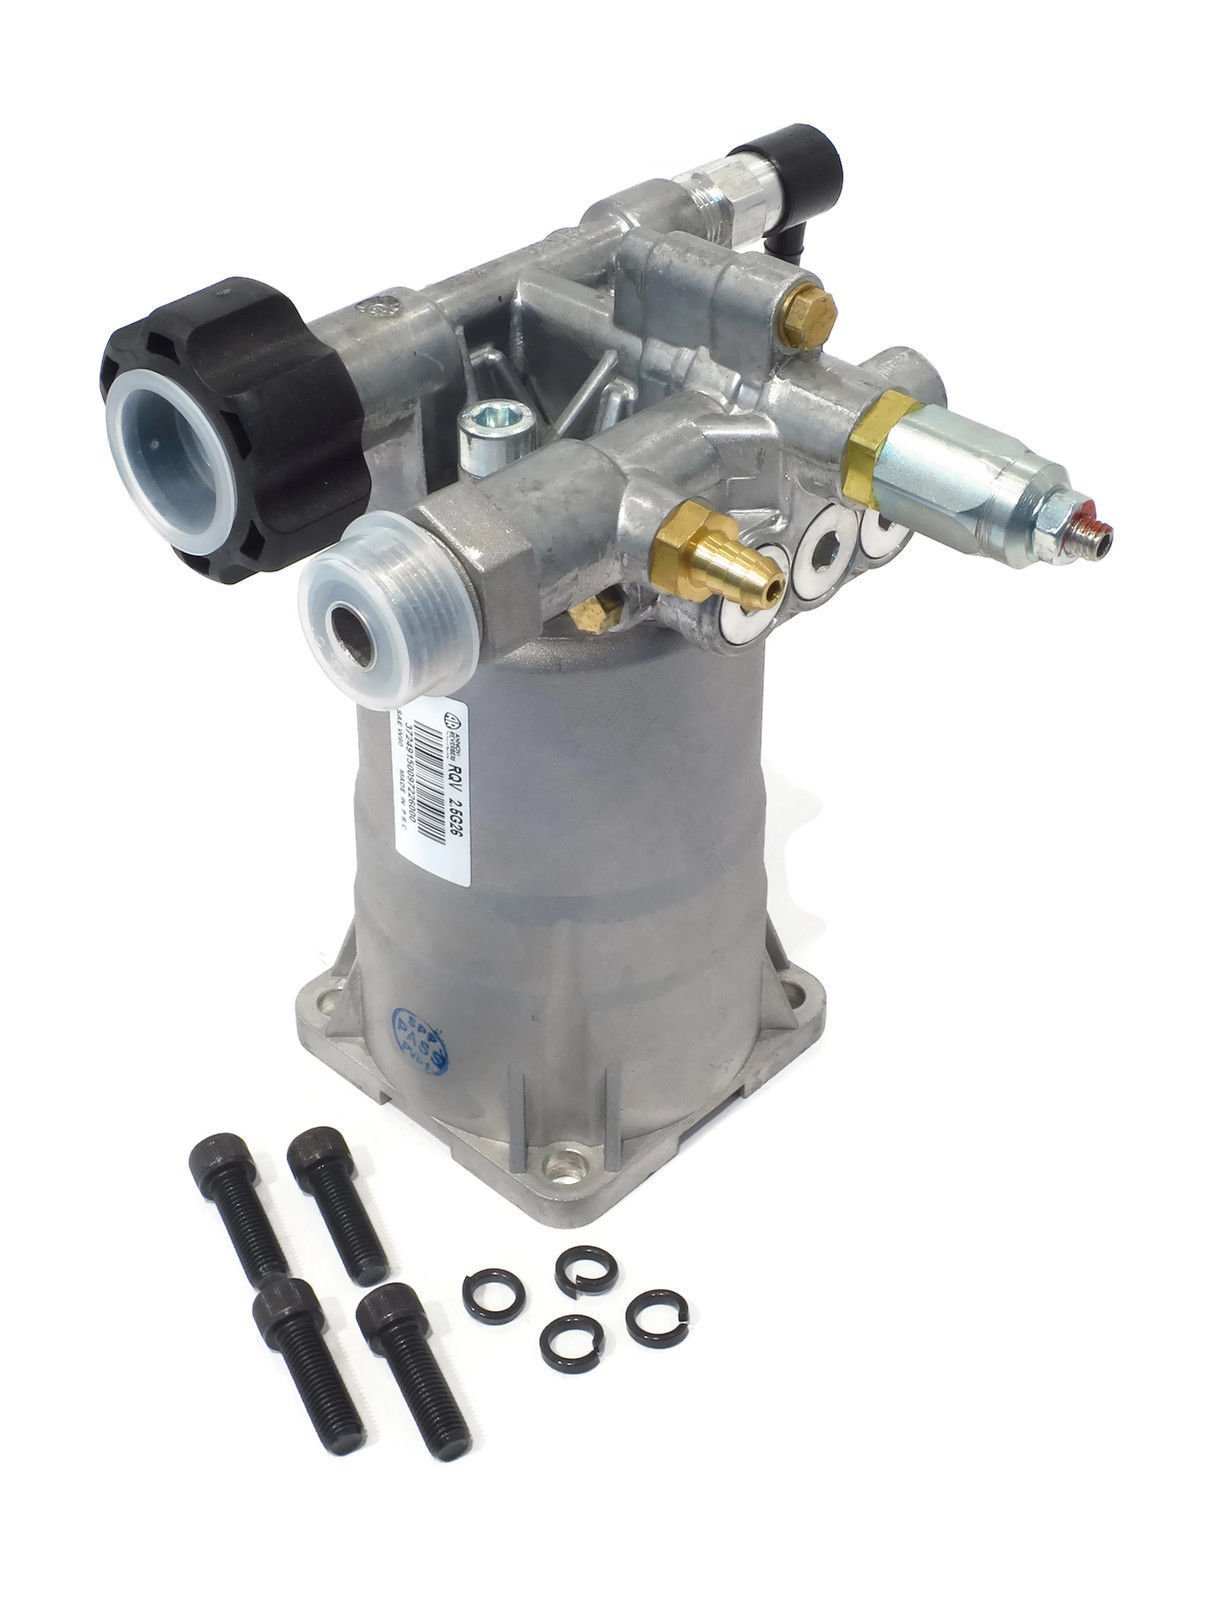 Annovi Reverberi 2600 PSI Pressure Washer Pump for Excell EXH2425 with Honda Engines w/Valve by The ROP Shop